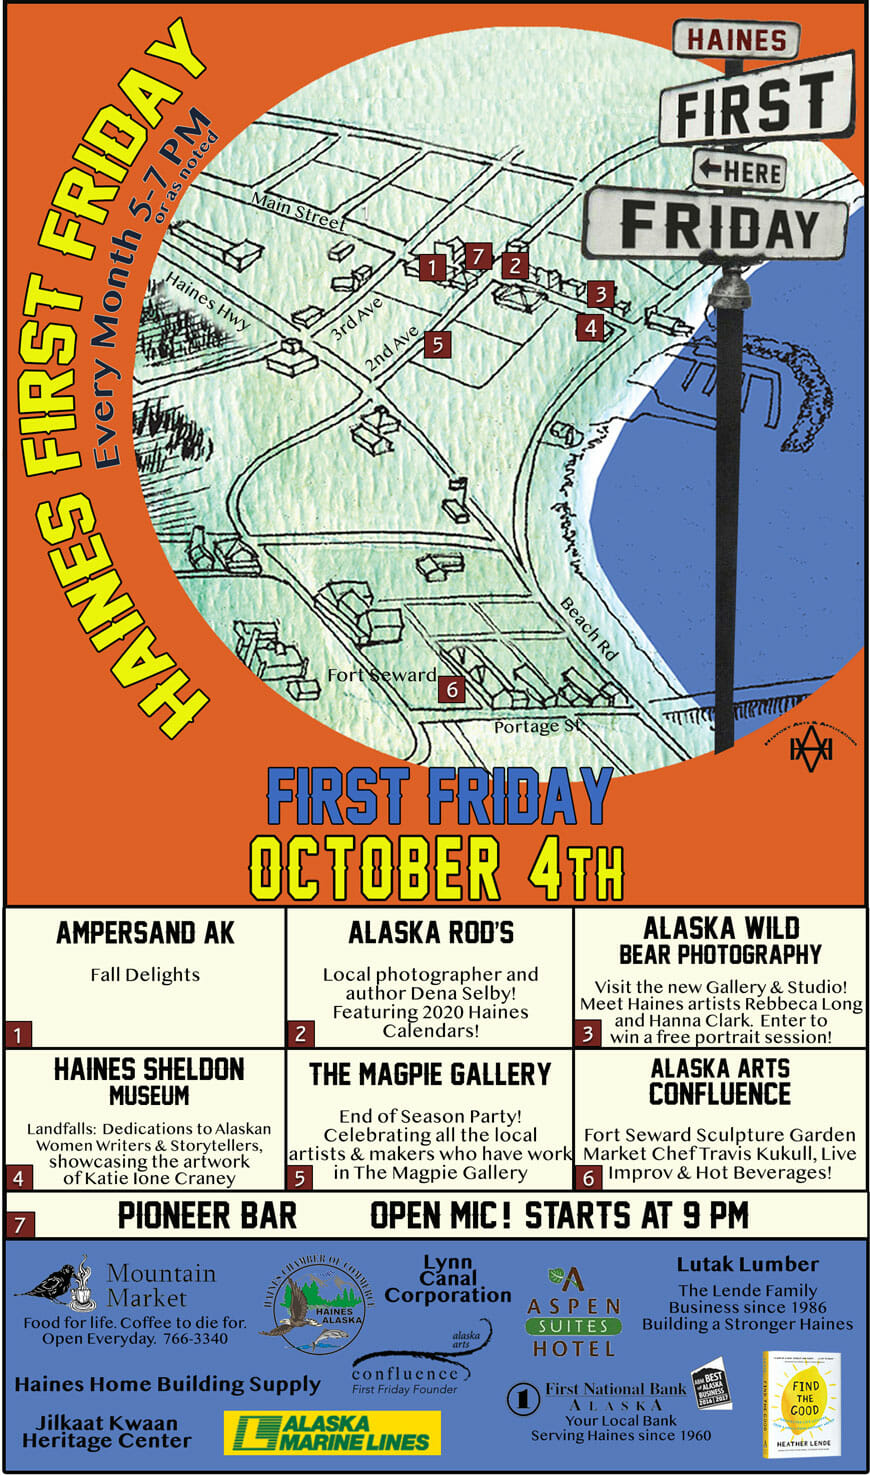 First Friday Haines Alaska October 4